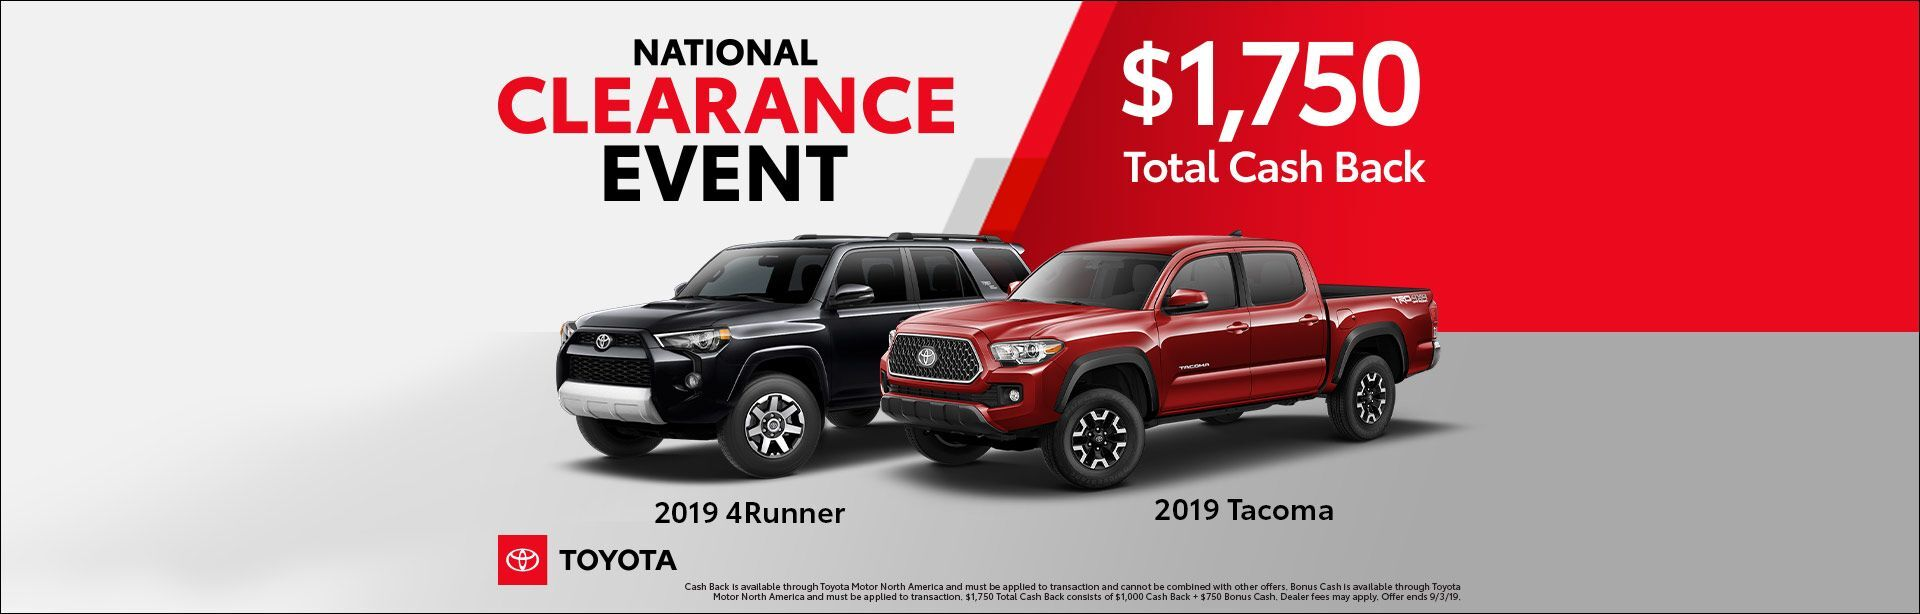 TACOMA&4RUNNER NAT CLEARANCE EVENT AUGUST 2019